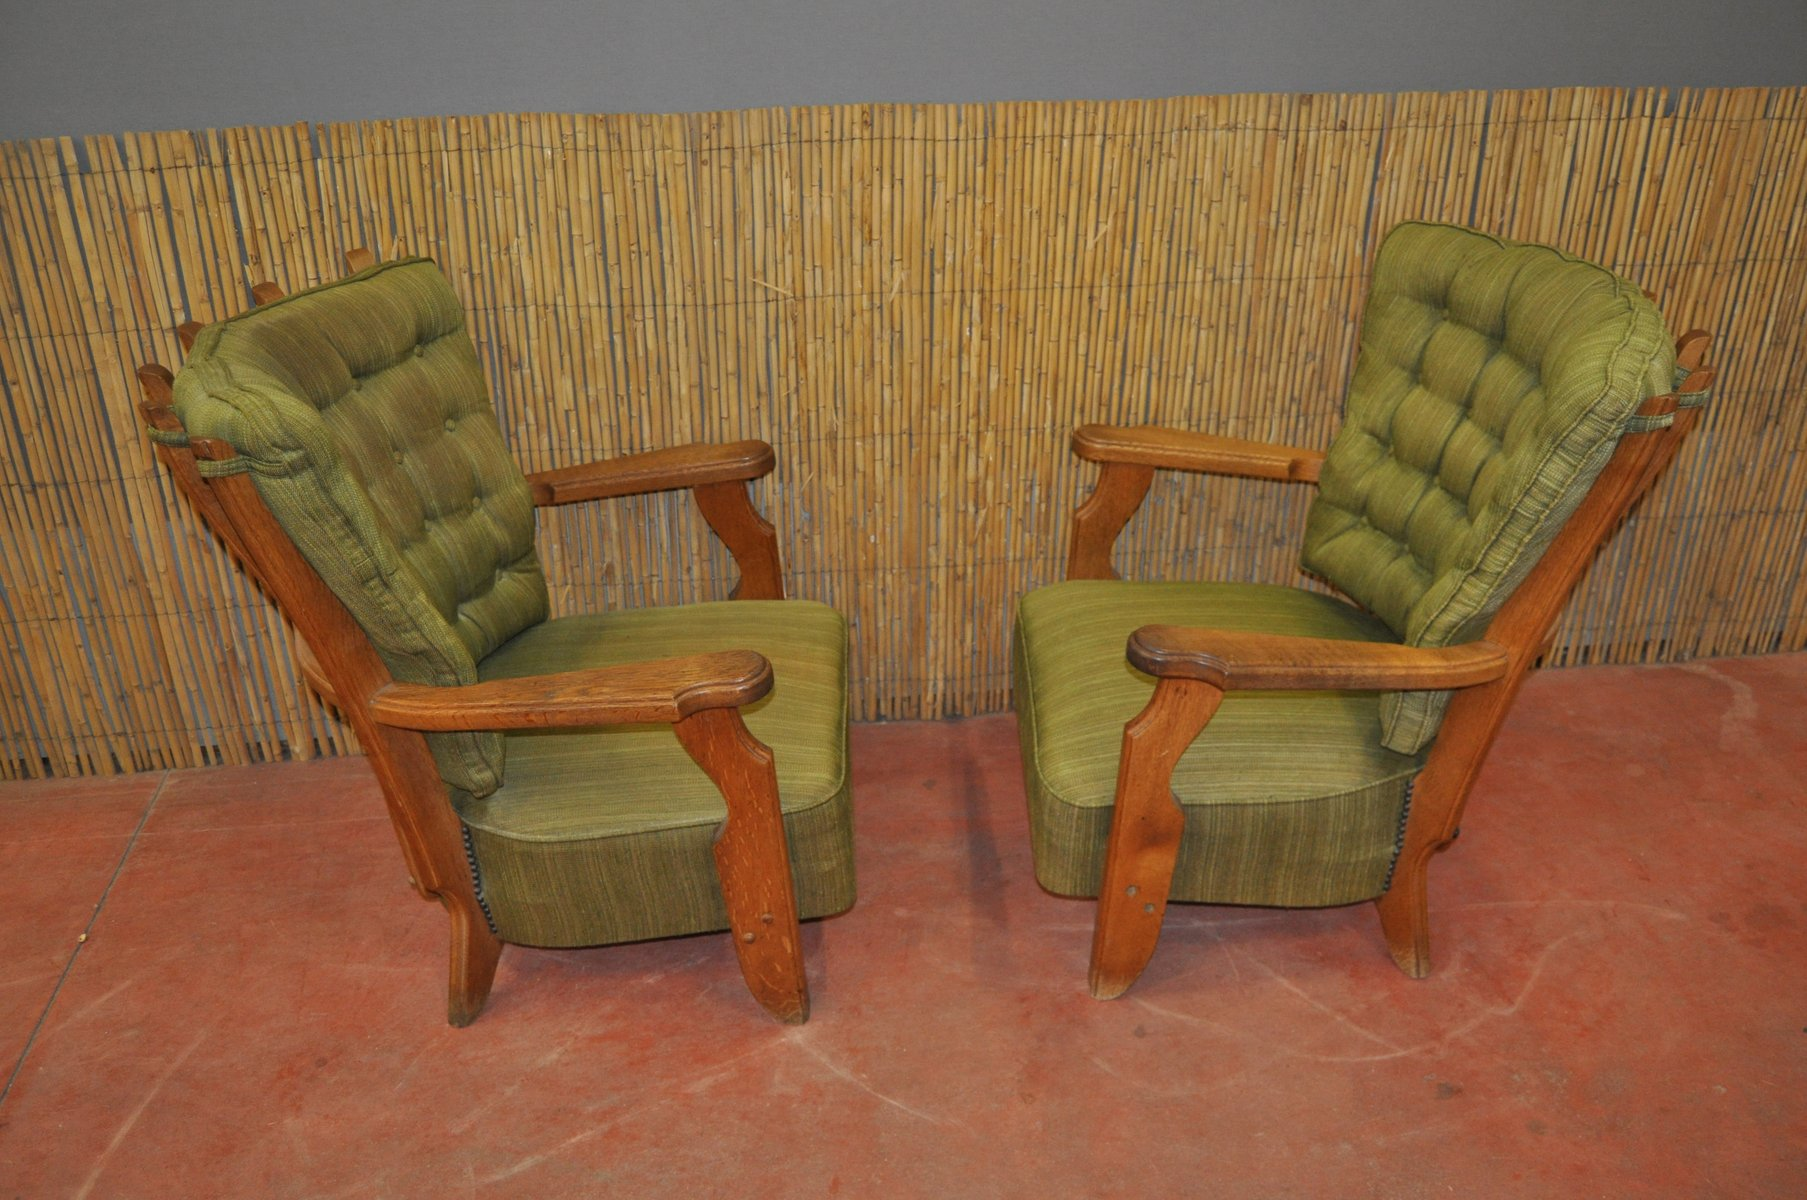 french armchairs by guillerme et chambron for votre maison 1950s set of 2 for sale at pamono. Black Bedroom Furniture Sets. Home Design Ideas